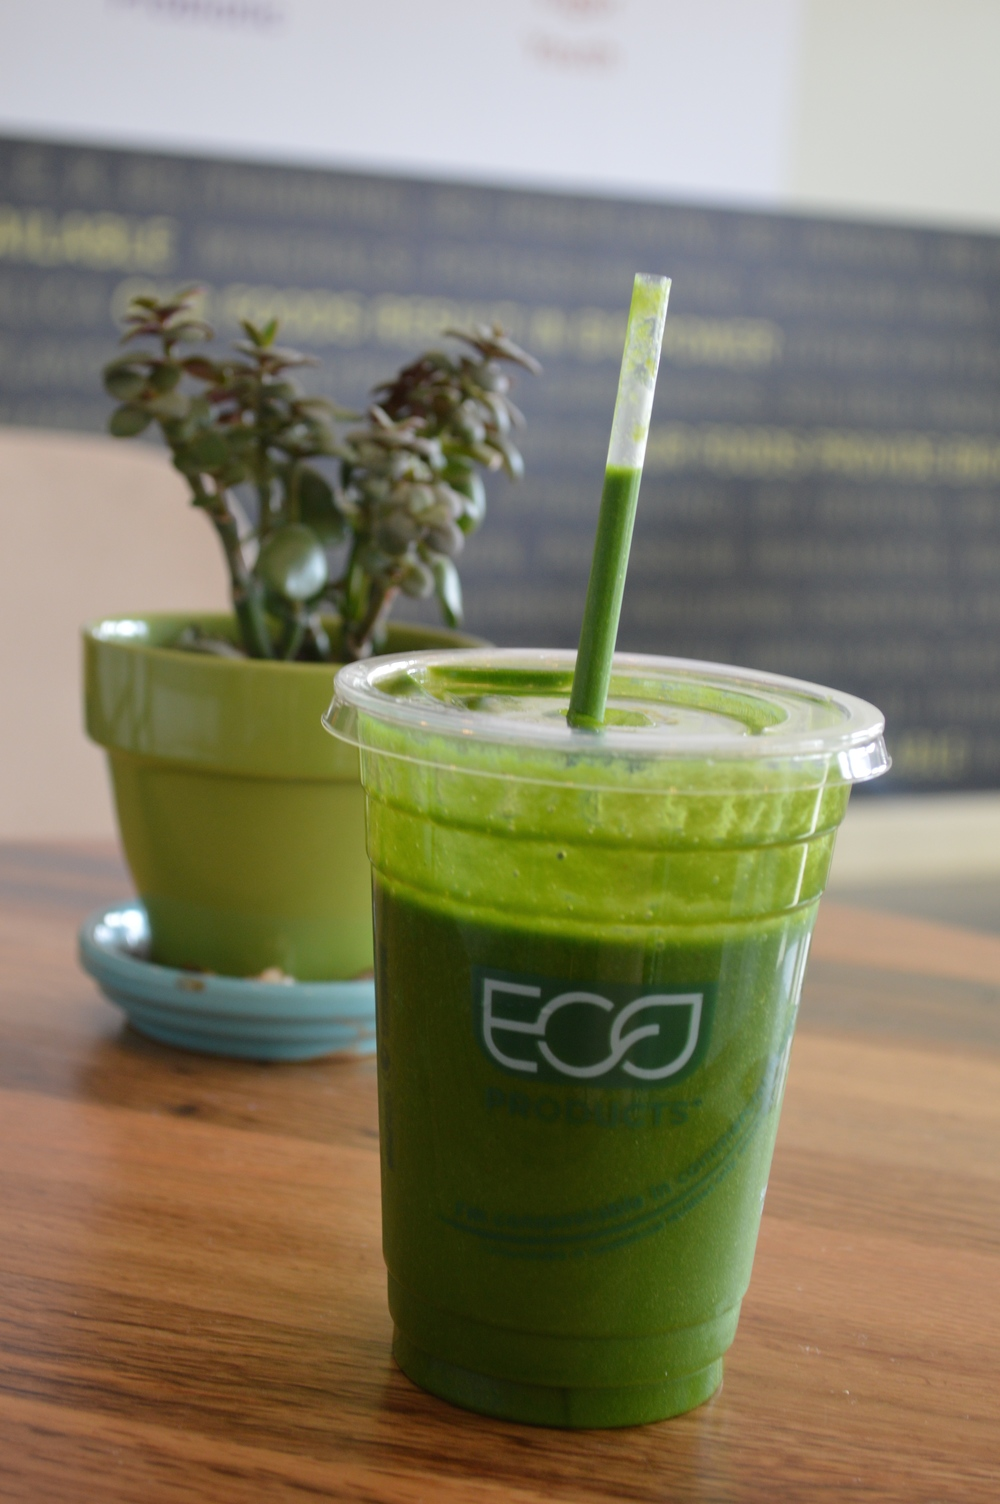 GlowingGreenSmoothie-GlowBio-LaurenSchwaiger-Travel-Blog.jpg